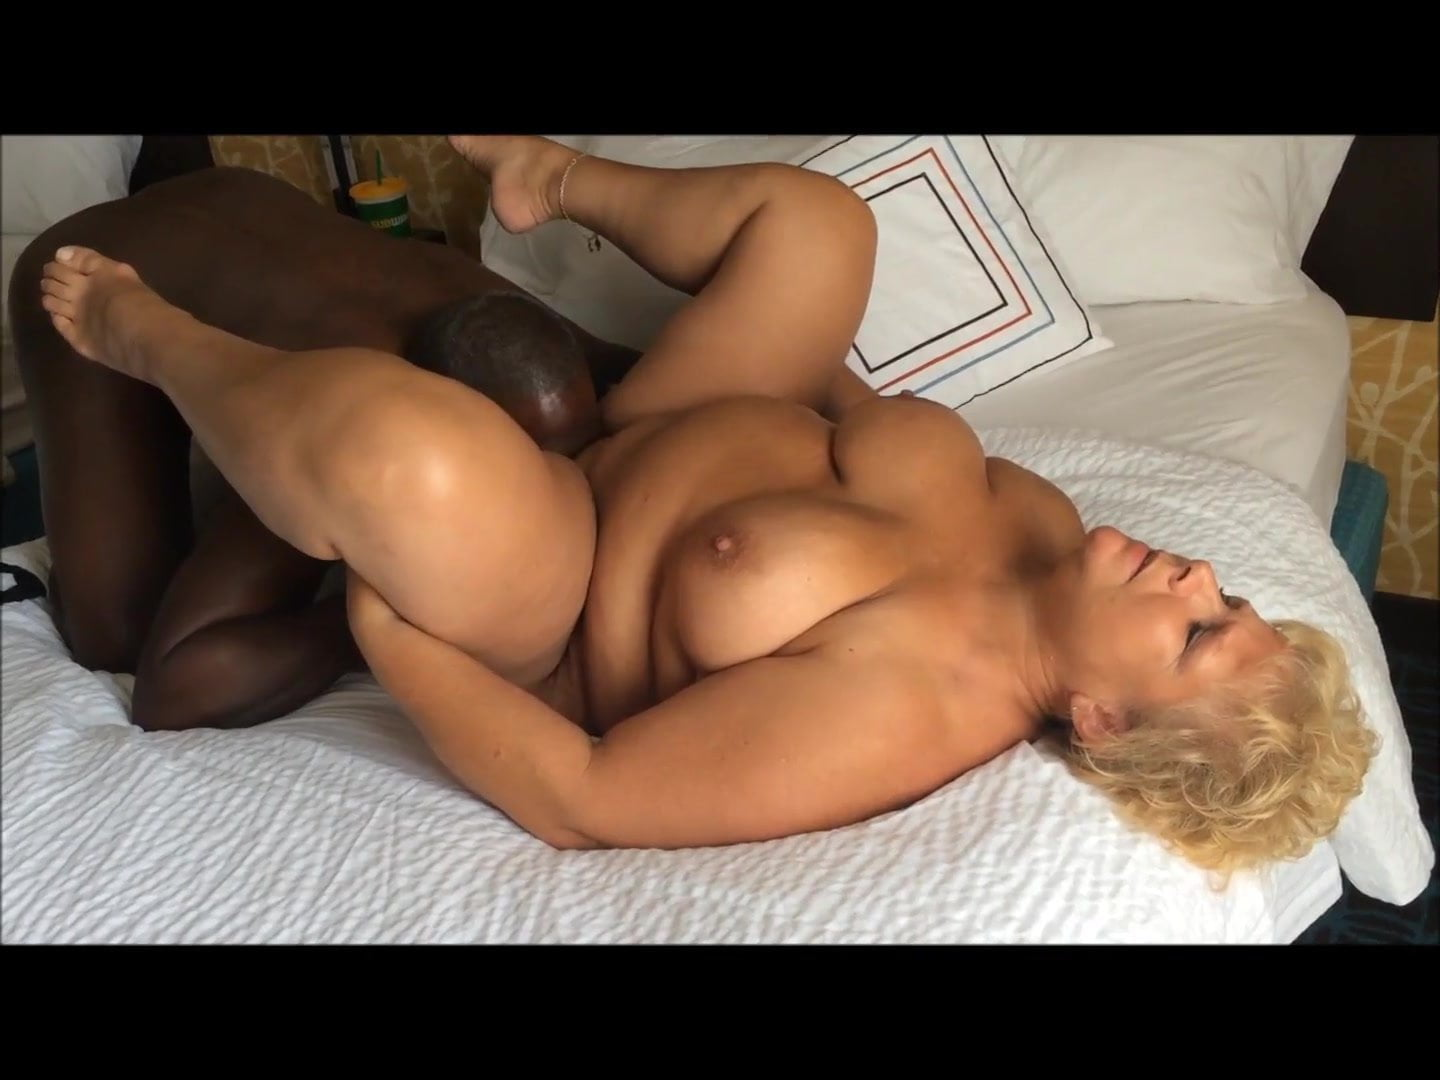 Wifey porn video